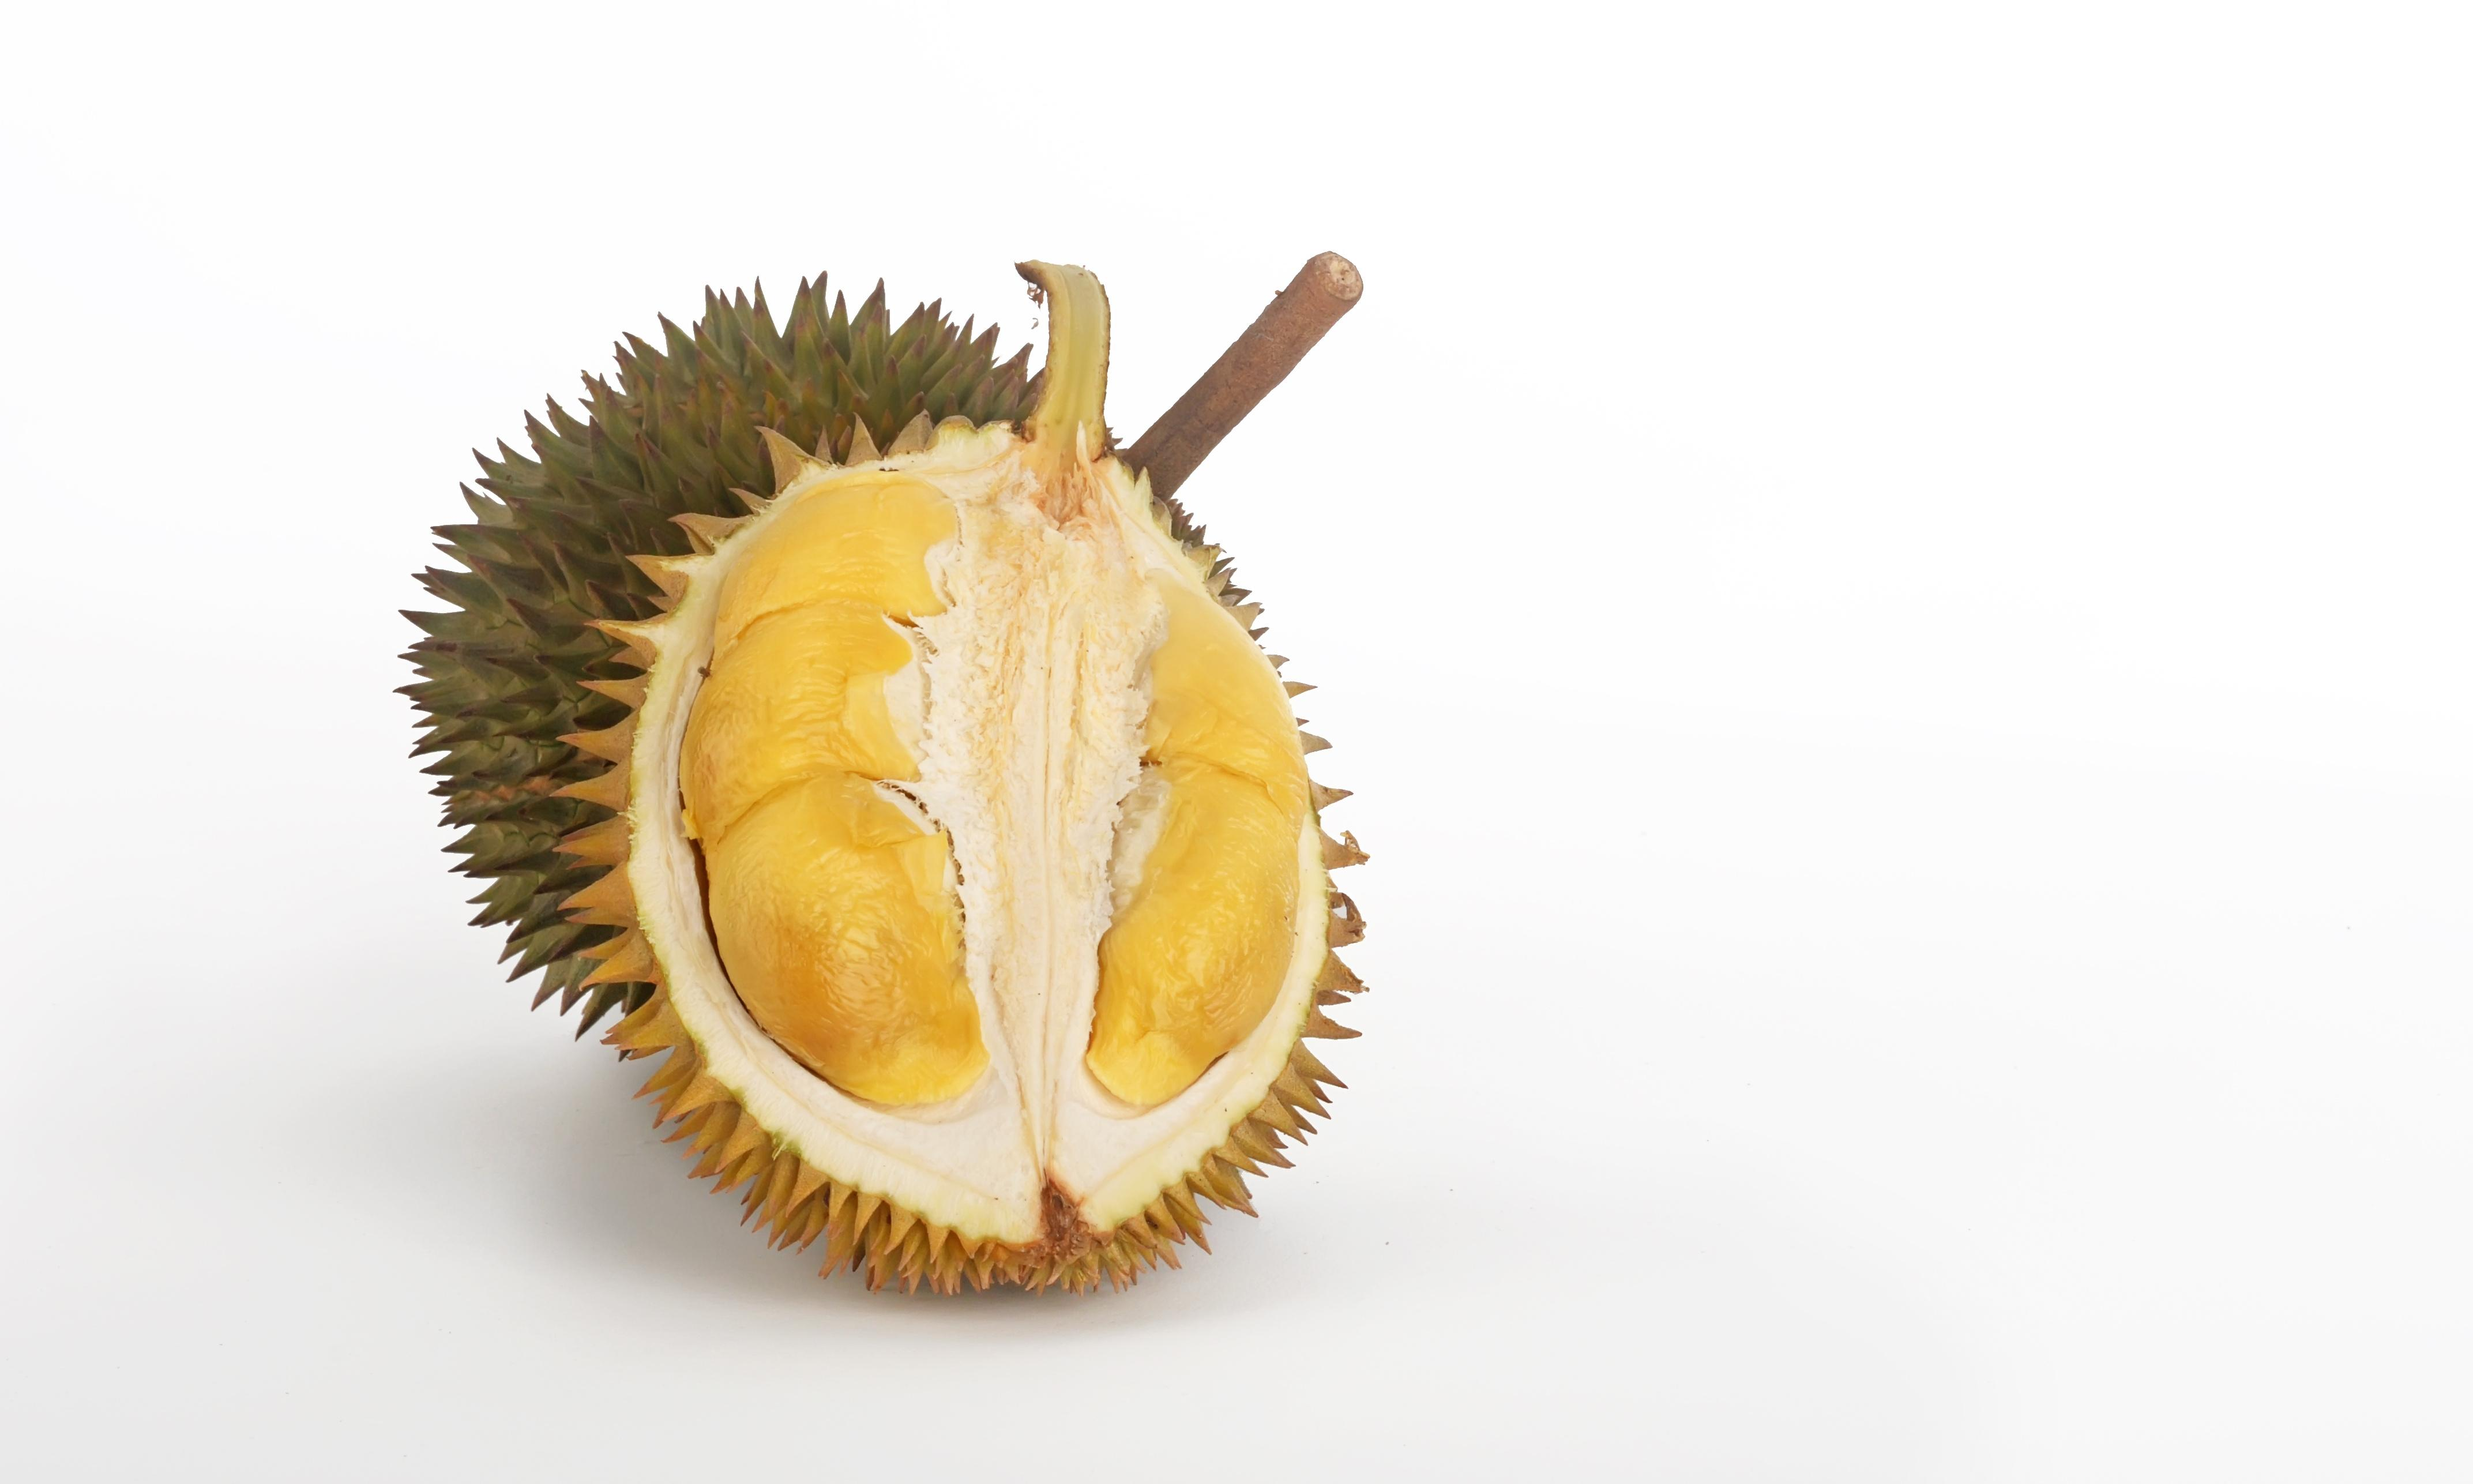 Library stink: smell of durian prompts evacuation at University of Canberra